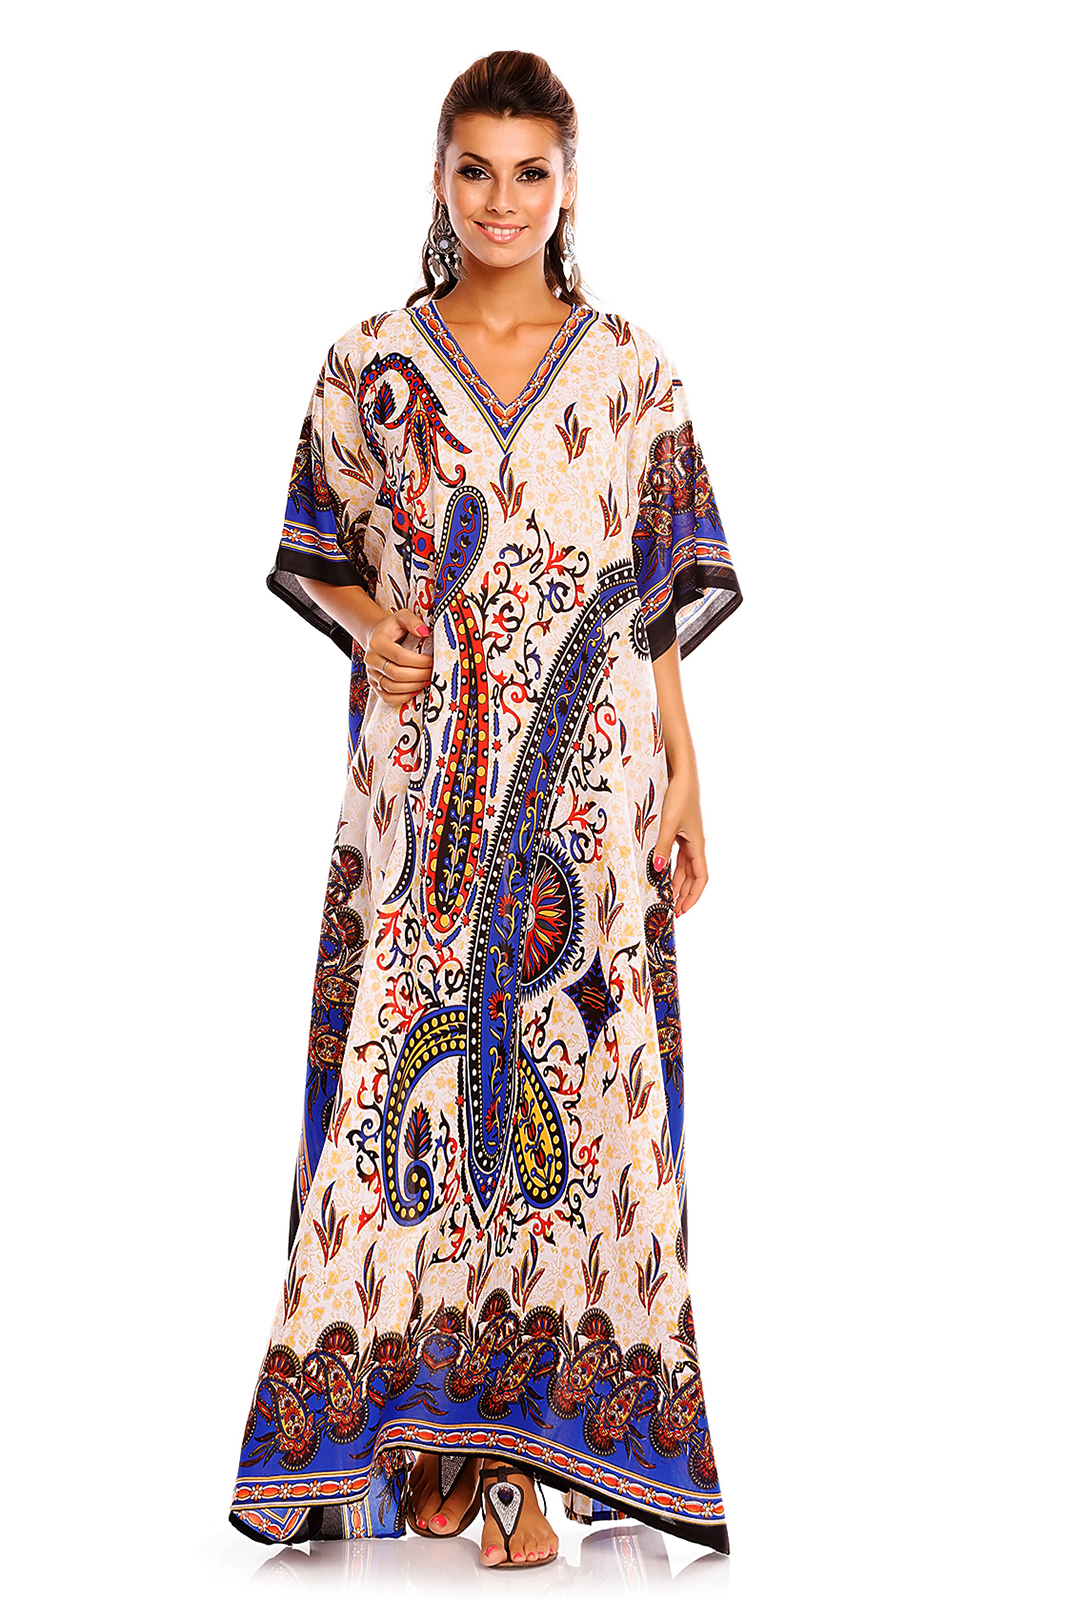 Brand New and High Quality Kaftan dress also can be used as beach Floerns Women's Short Sleeve Oversized Maxi Kaftan Dress. (US Dress Size W, UK Size , EU Size ) Goood Times Plus Size Kaftan Dress Tunic Long Maxi Kimono Caftan Gown Nightdress Beach Party Casual Dress. by Goood Times.